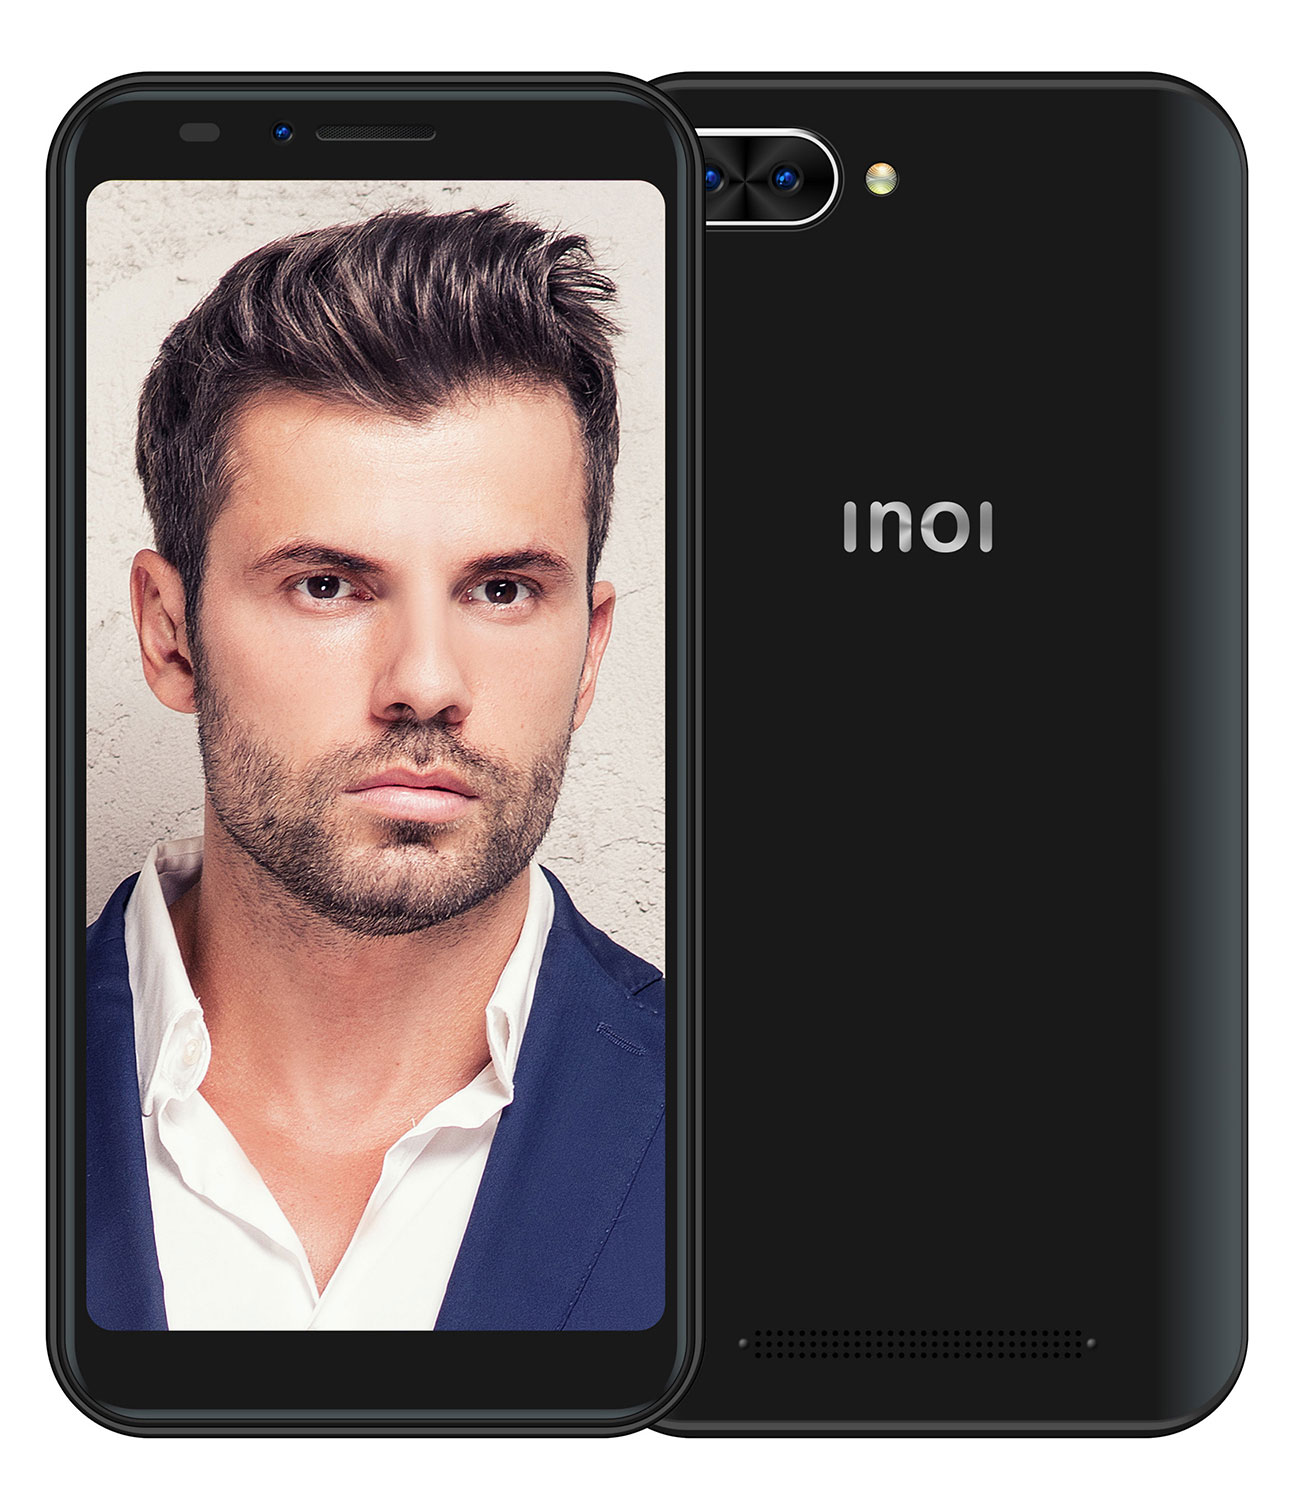 Фото - Смартфон INOI 6i Lite Black смартфон inoi 2 1 8gb black